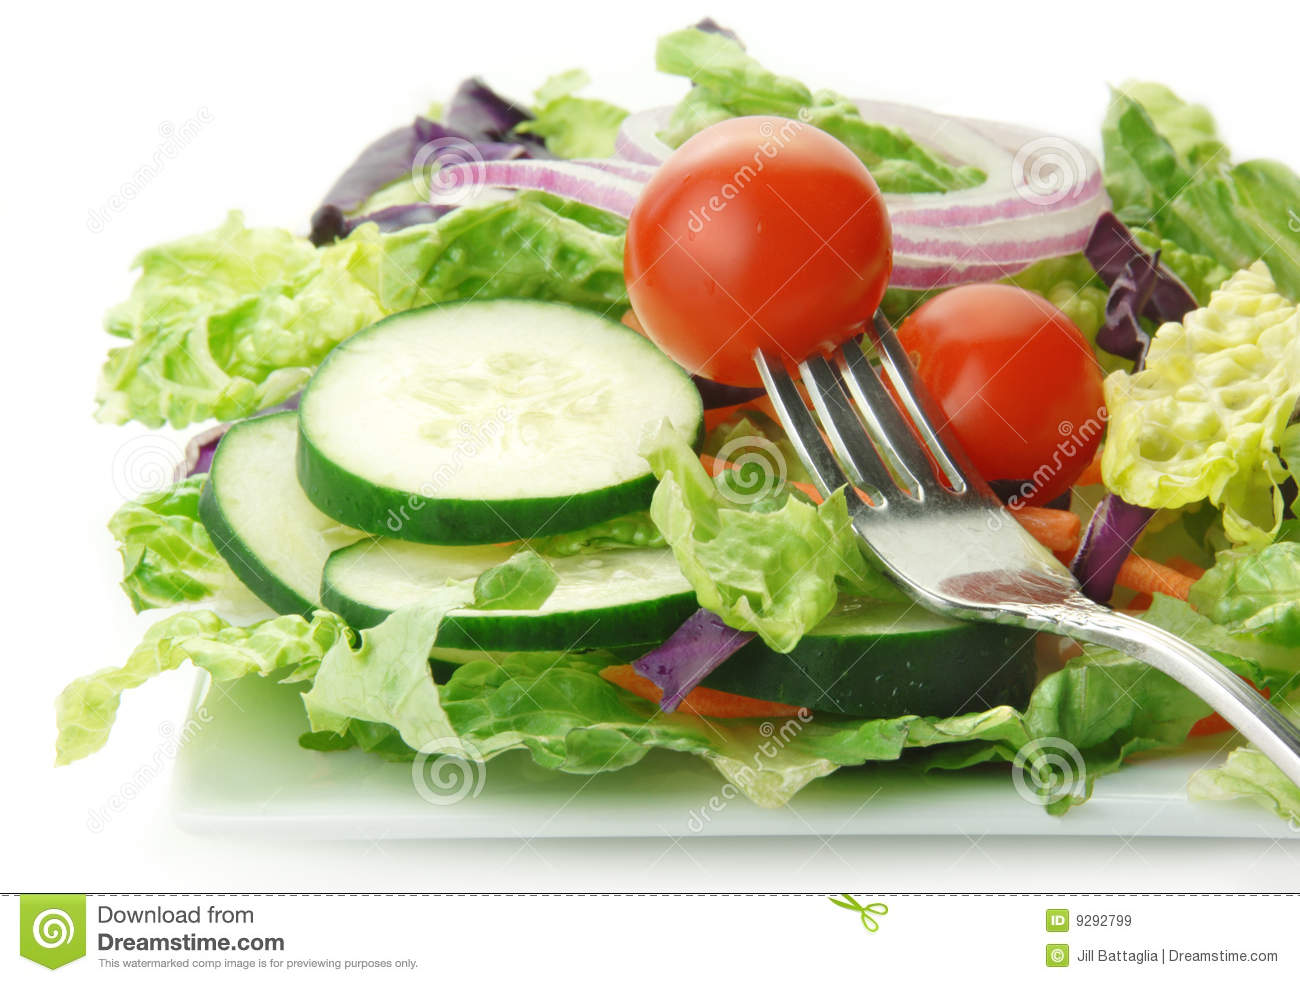 how to use lettuce in salad